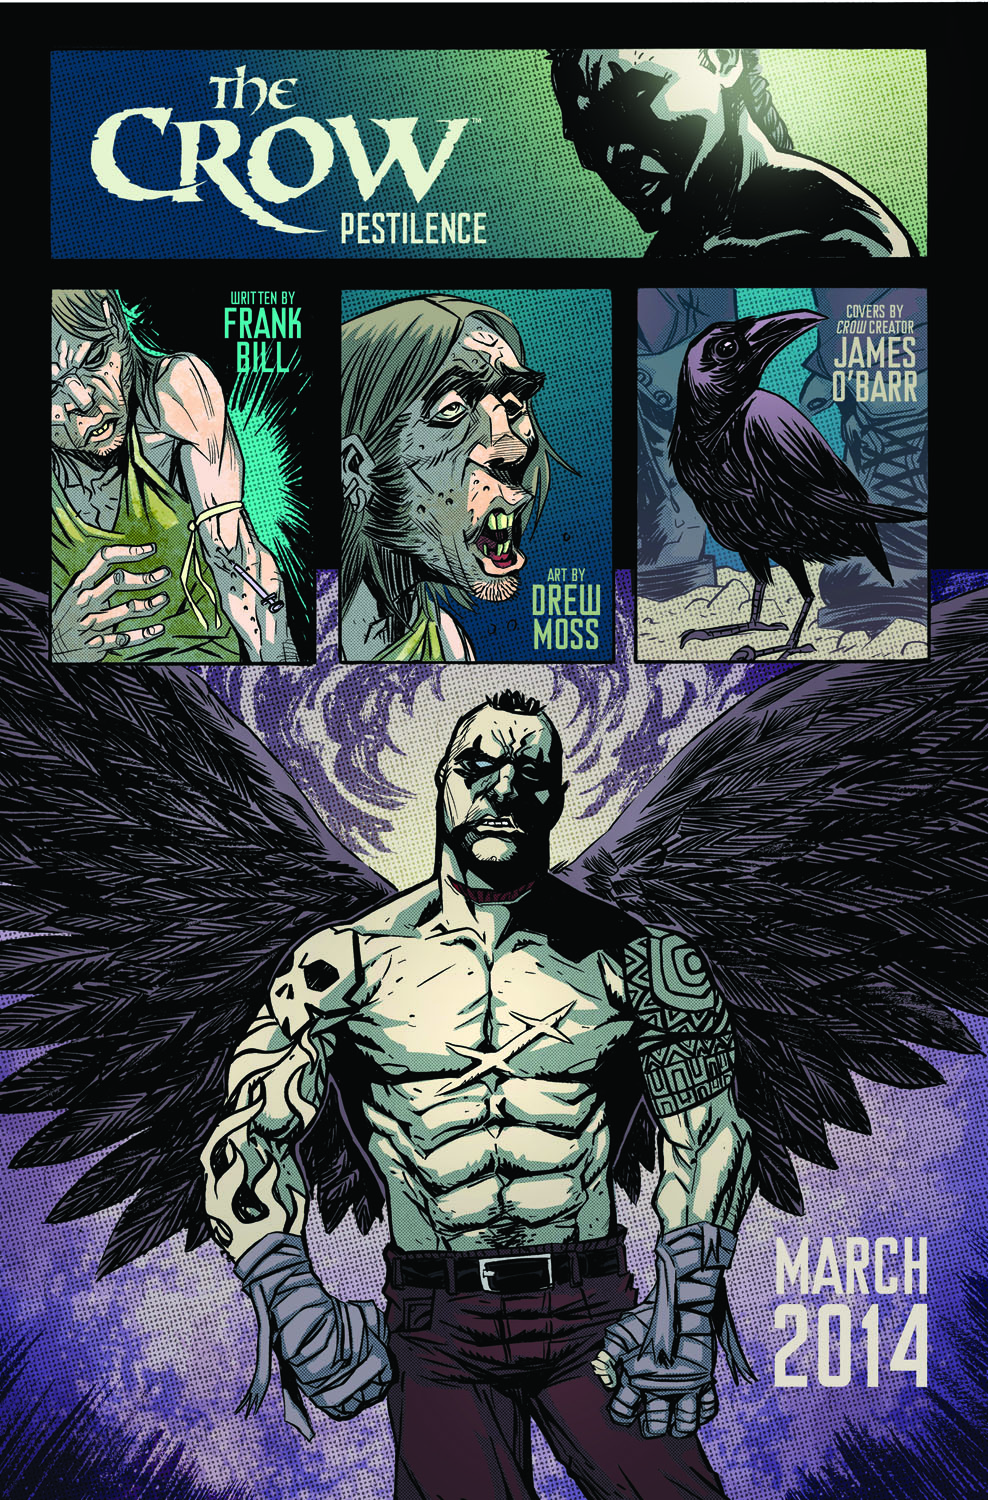 The Crow Comic Book Resurrected Next Year